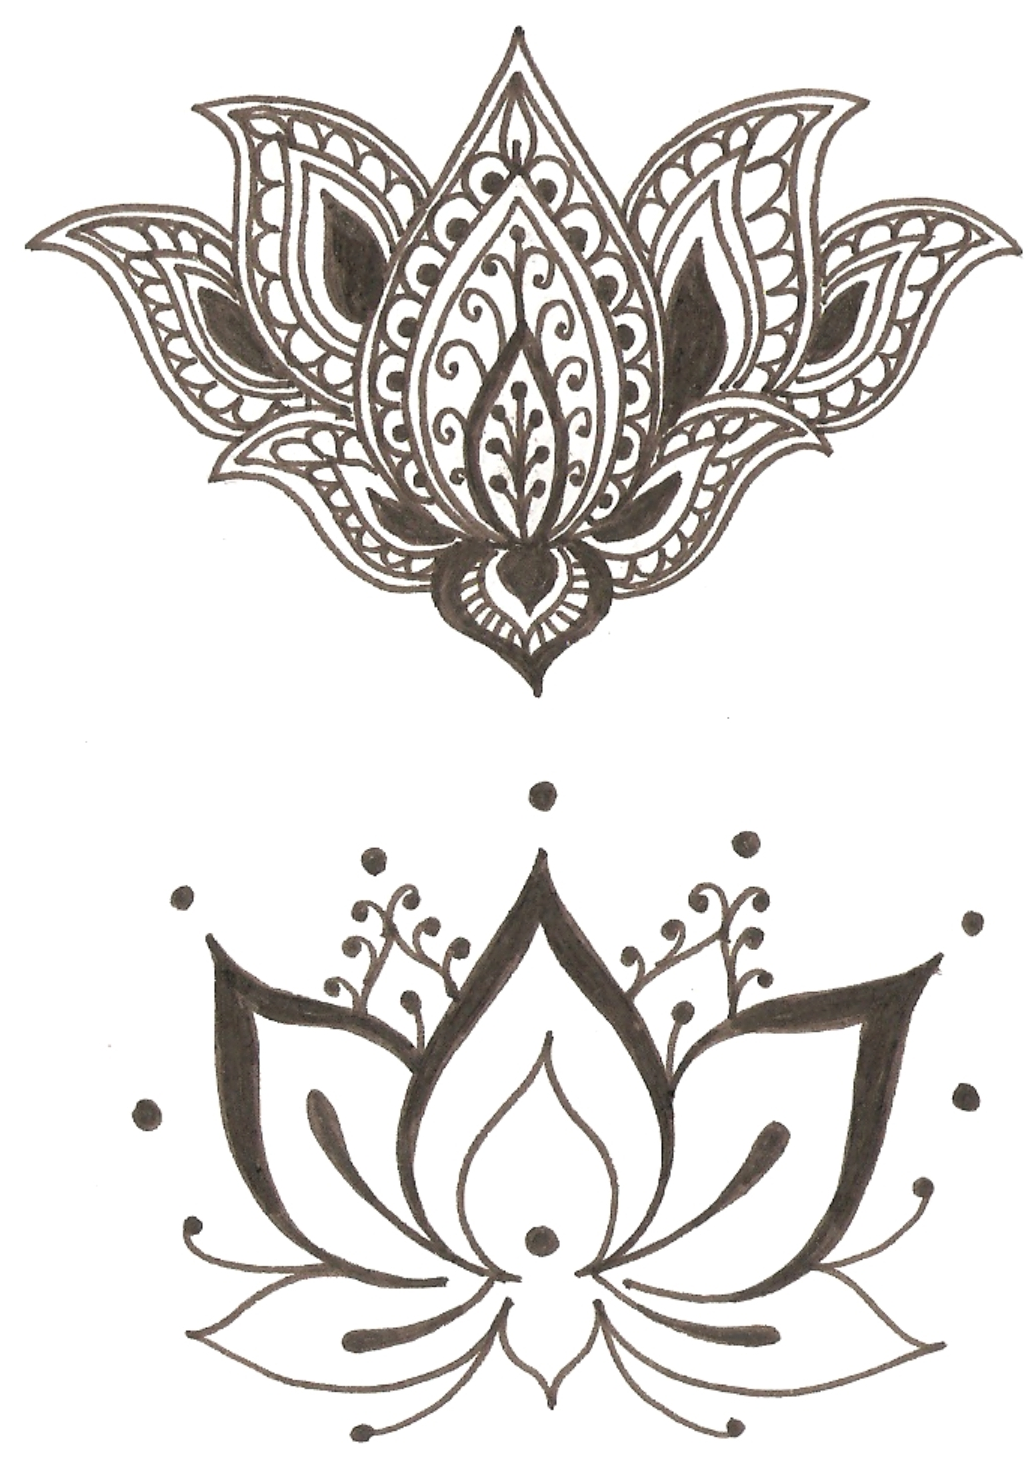 Lotus Flower Symbol Of Spirituality Beauty Femininity Purity